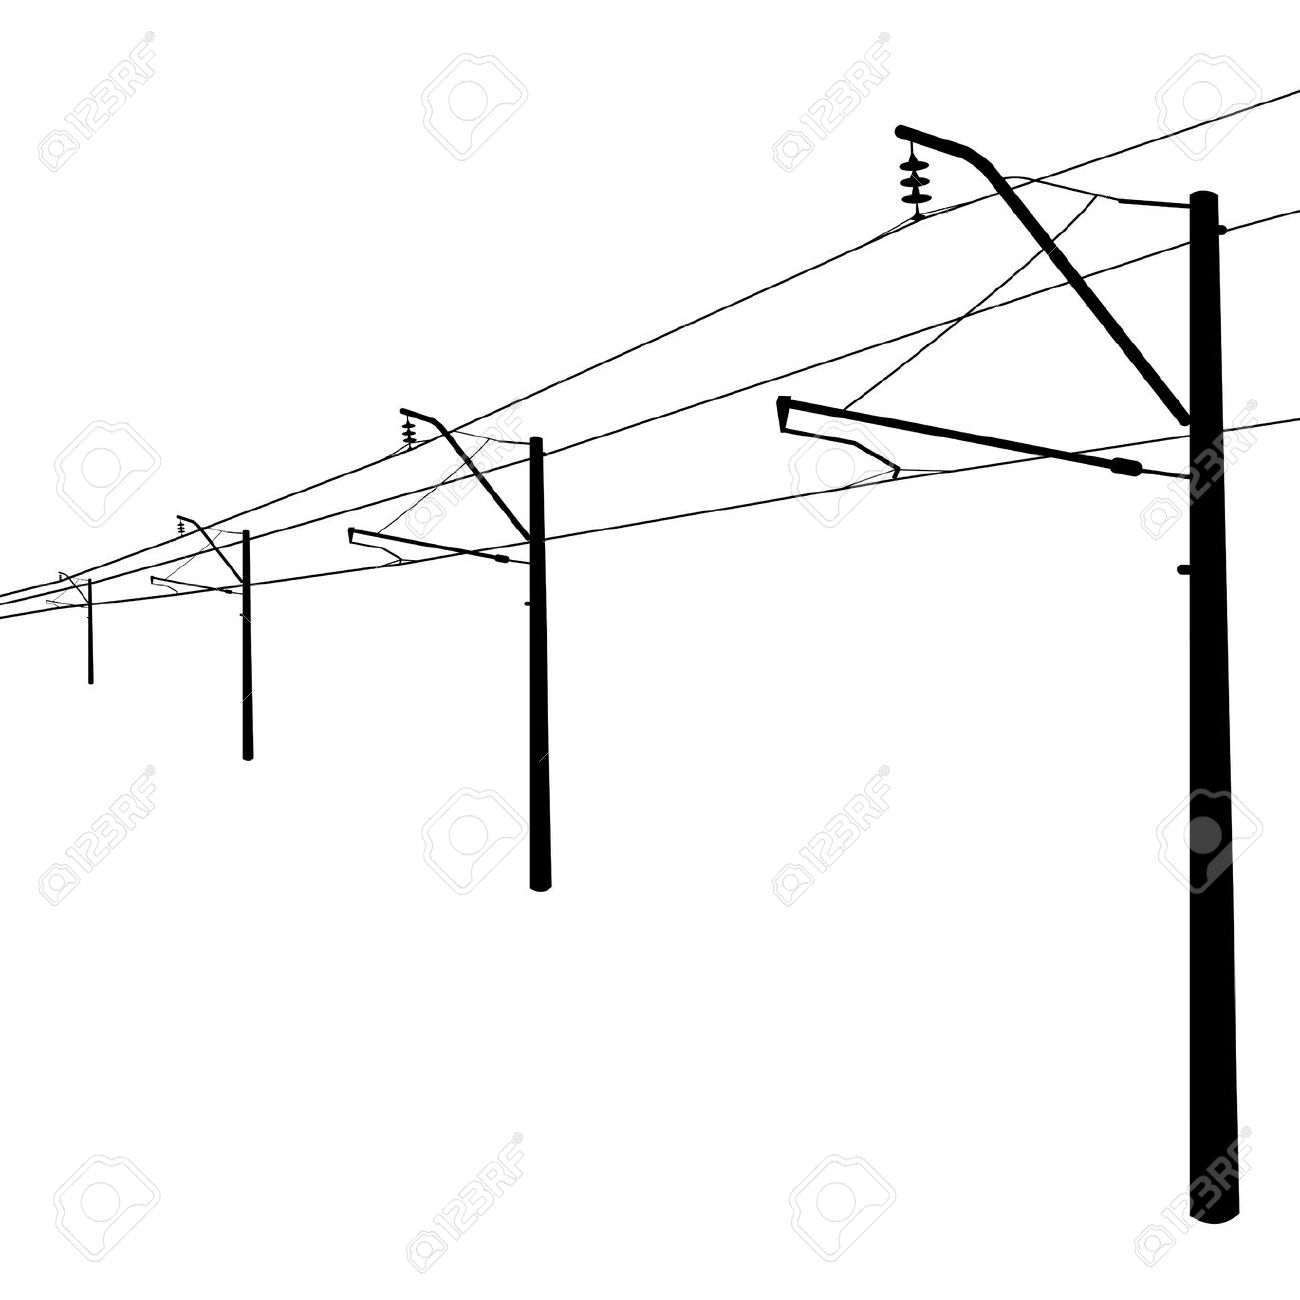 Railroad Overhead Lines Contact Wire Illustration Royalty Free.